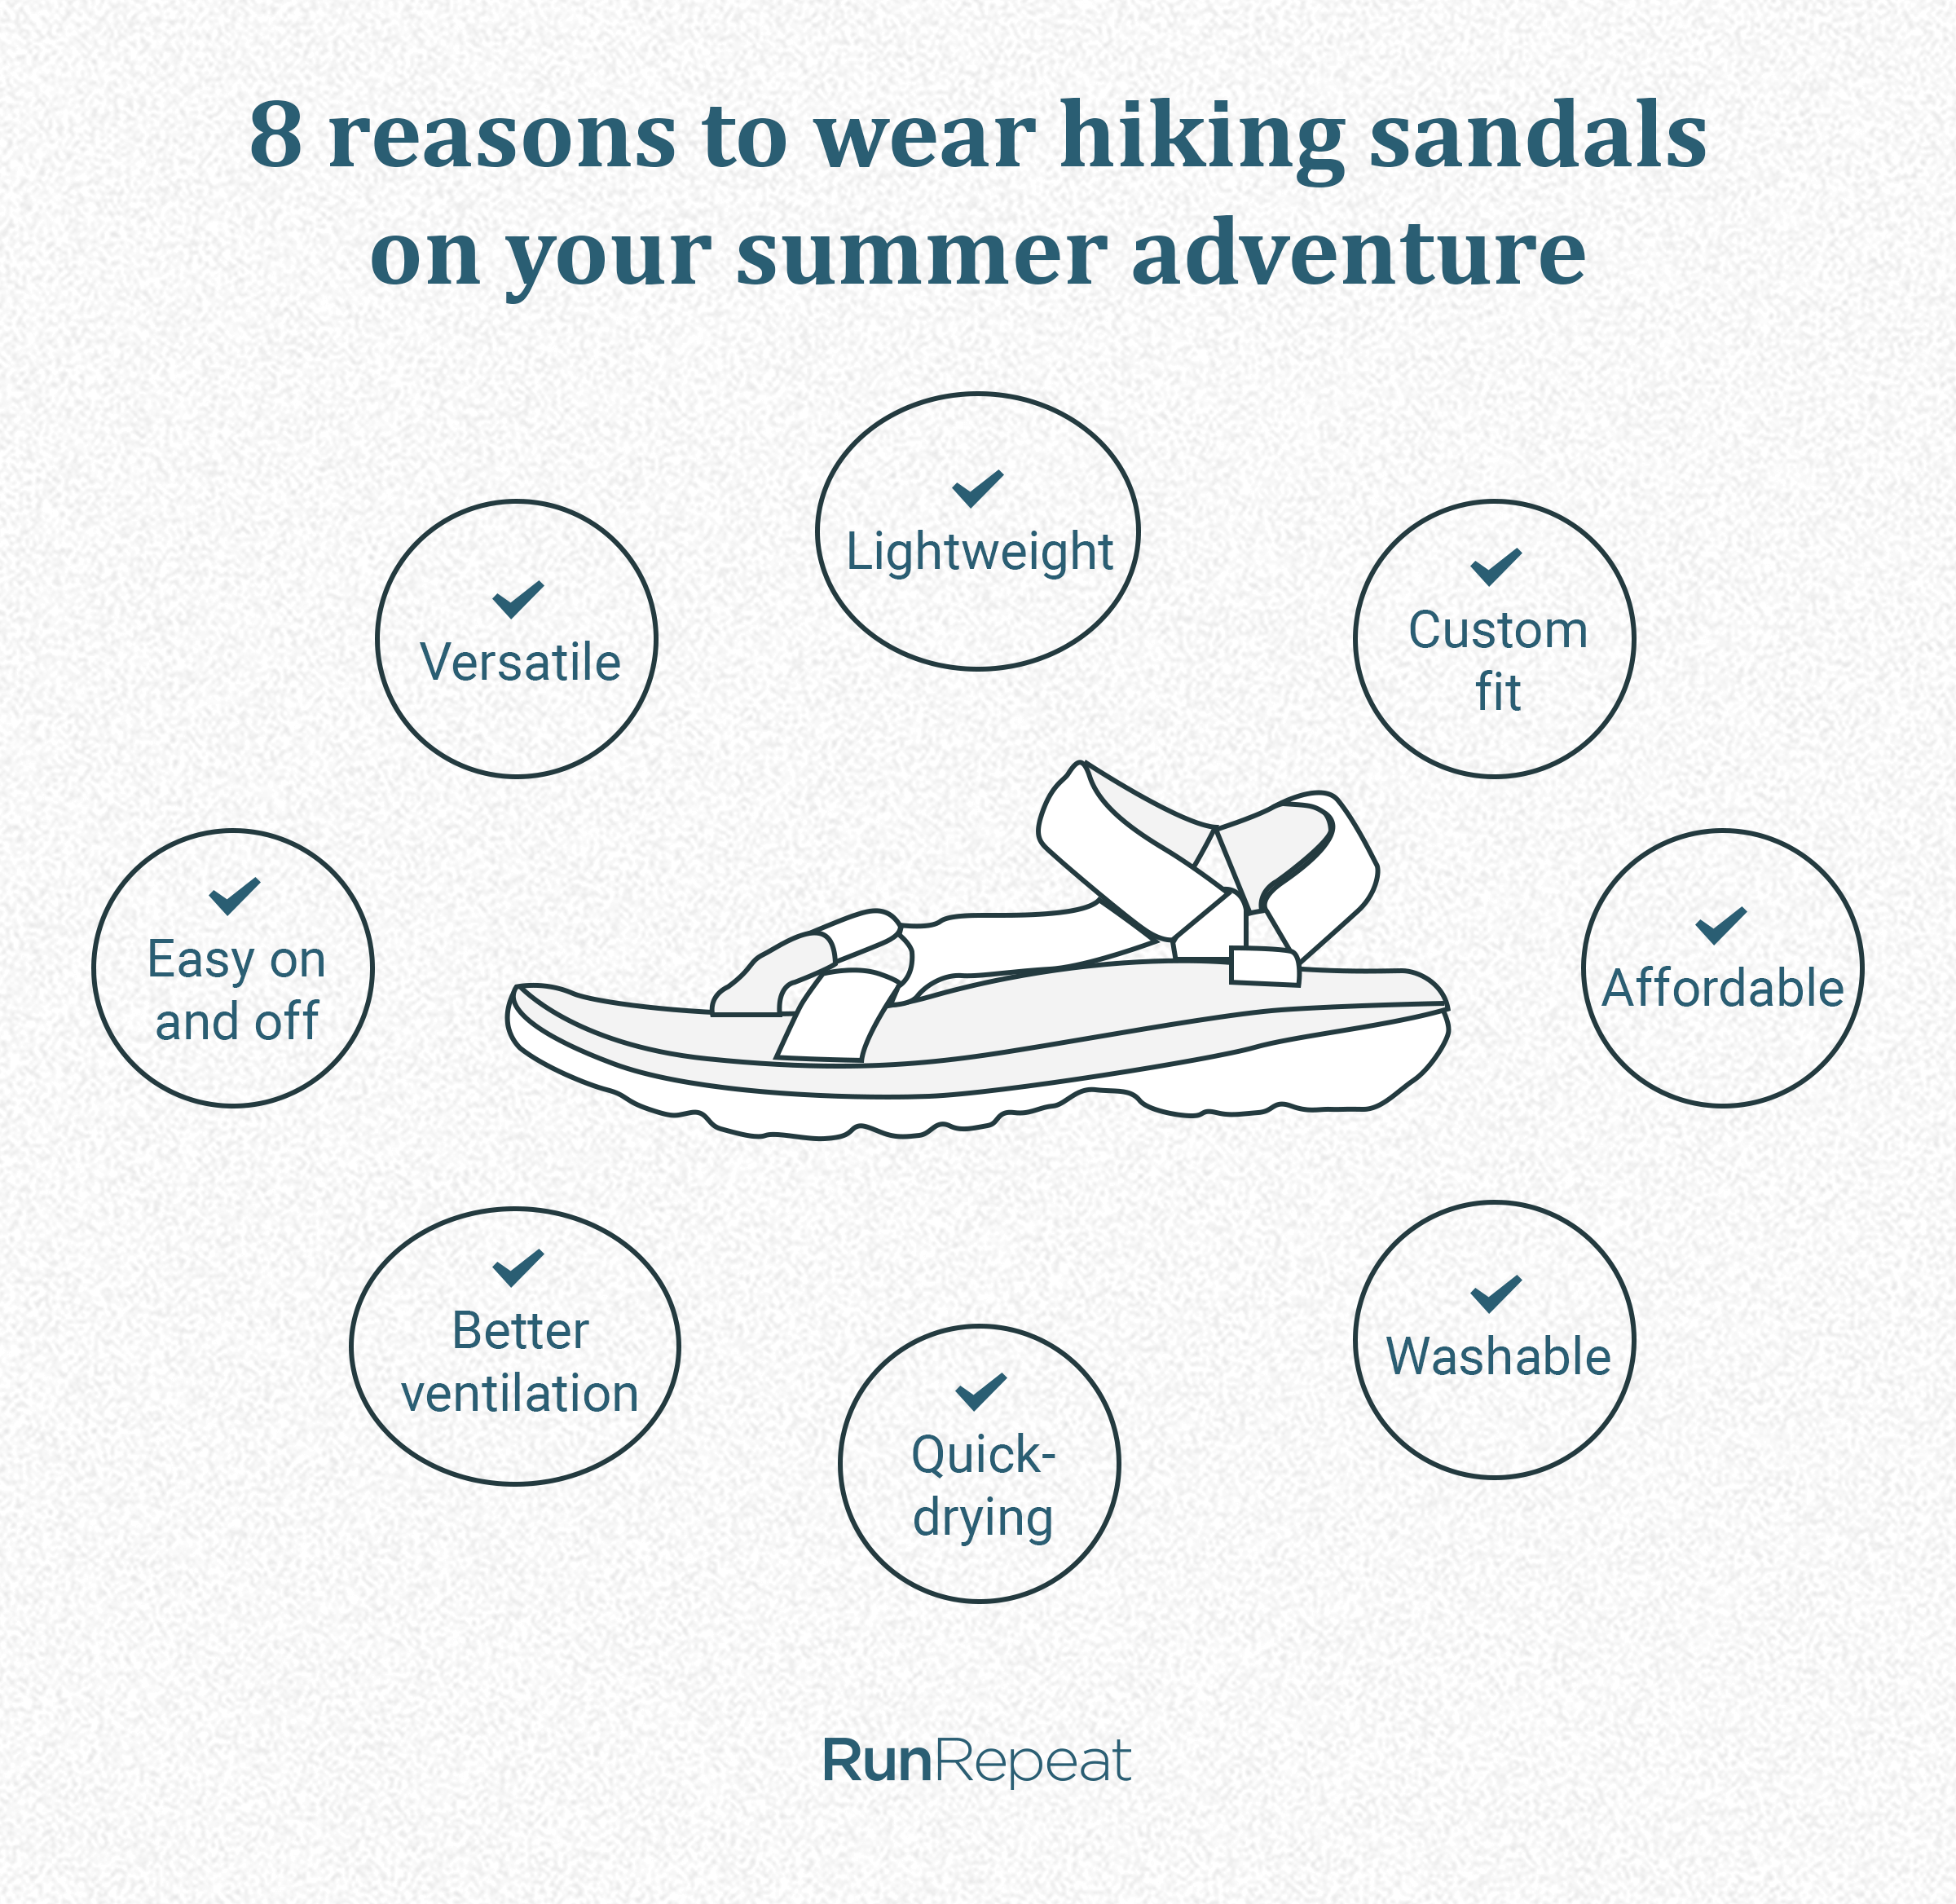 8 reasons to wear hiking sandals on your summer adventure.png